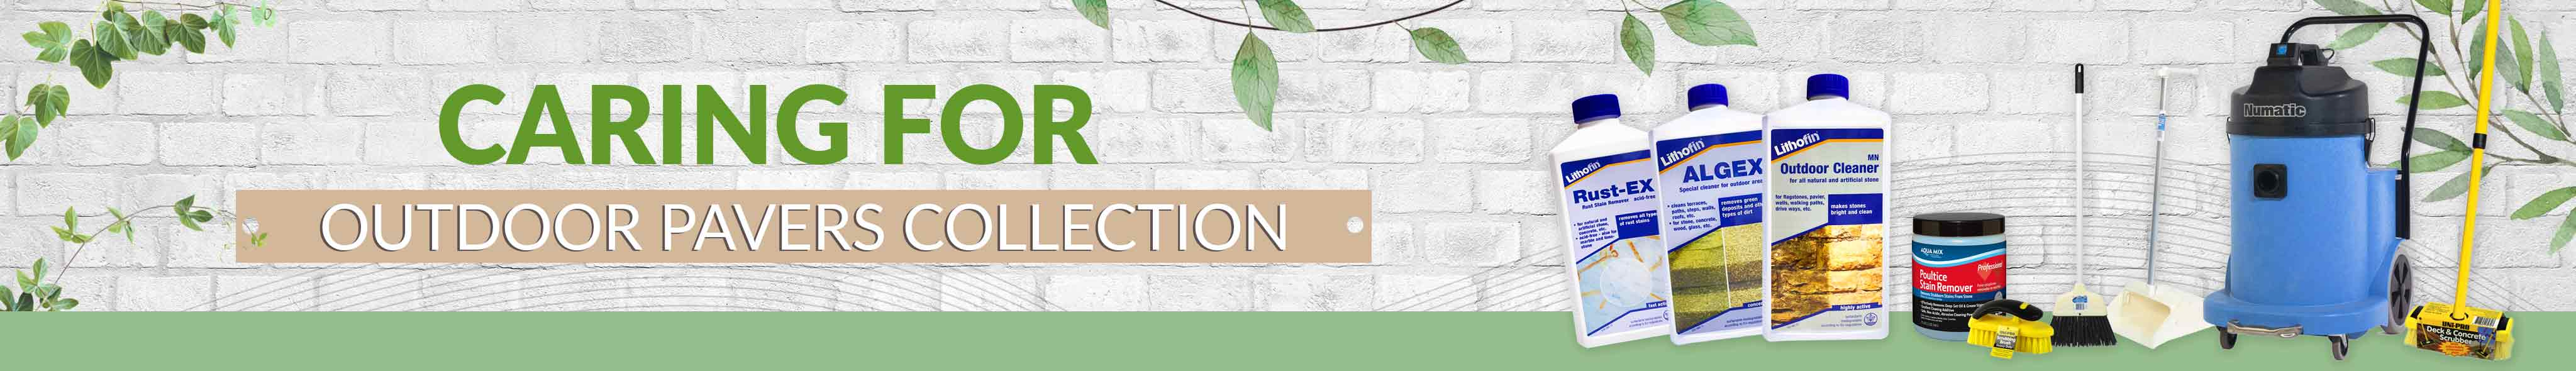 Stone Doctor Australia Bundle Promo | Caring for Outdoor paver Collection